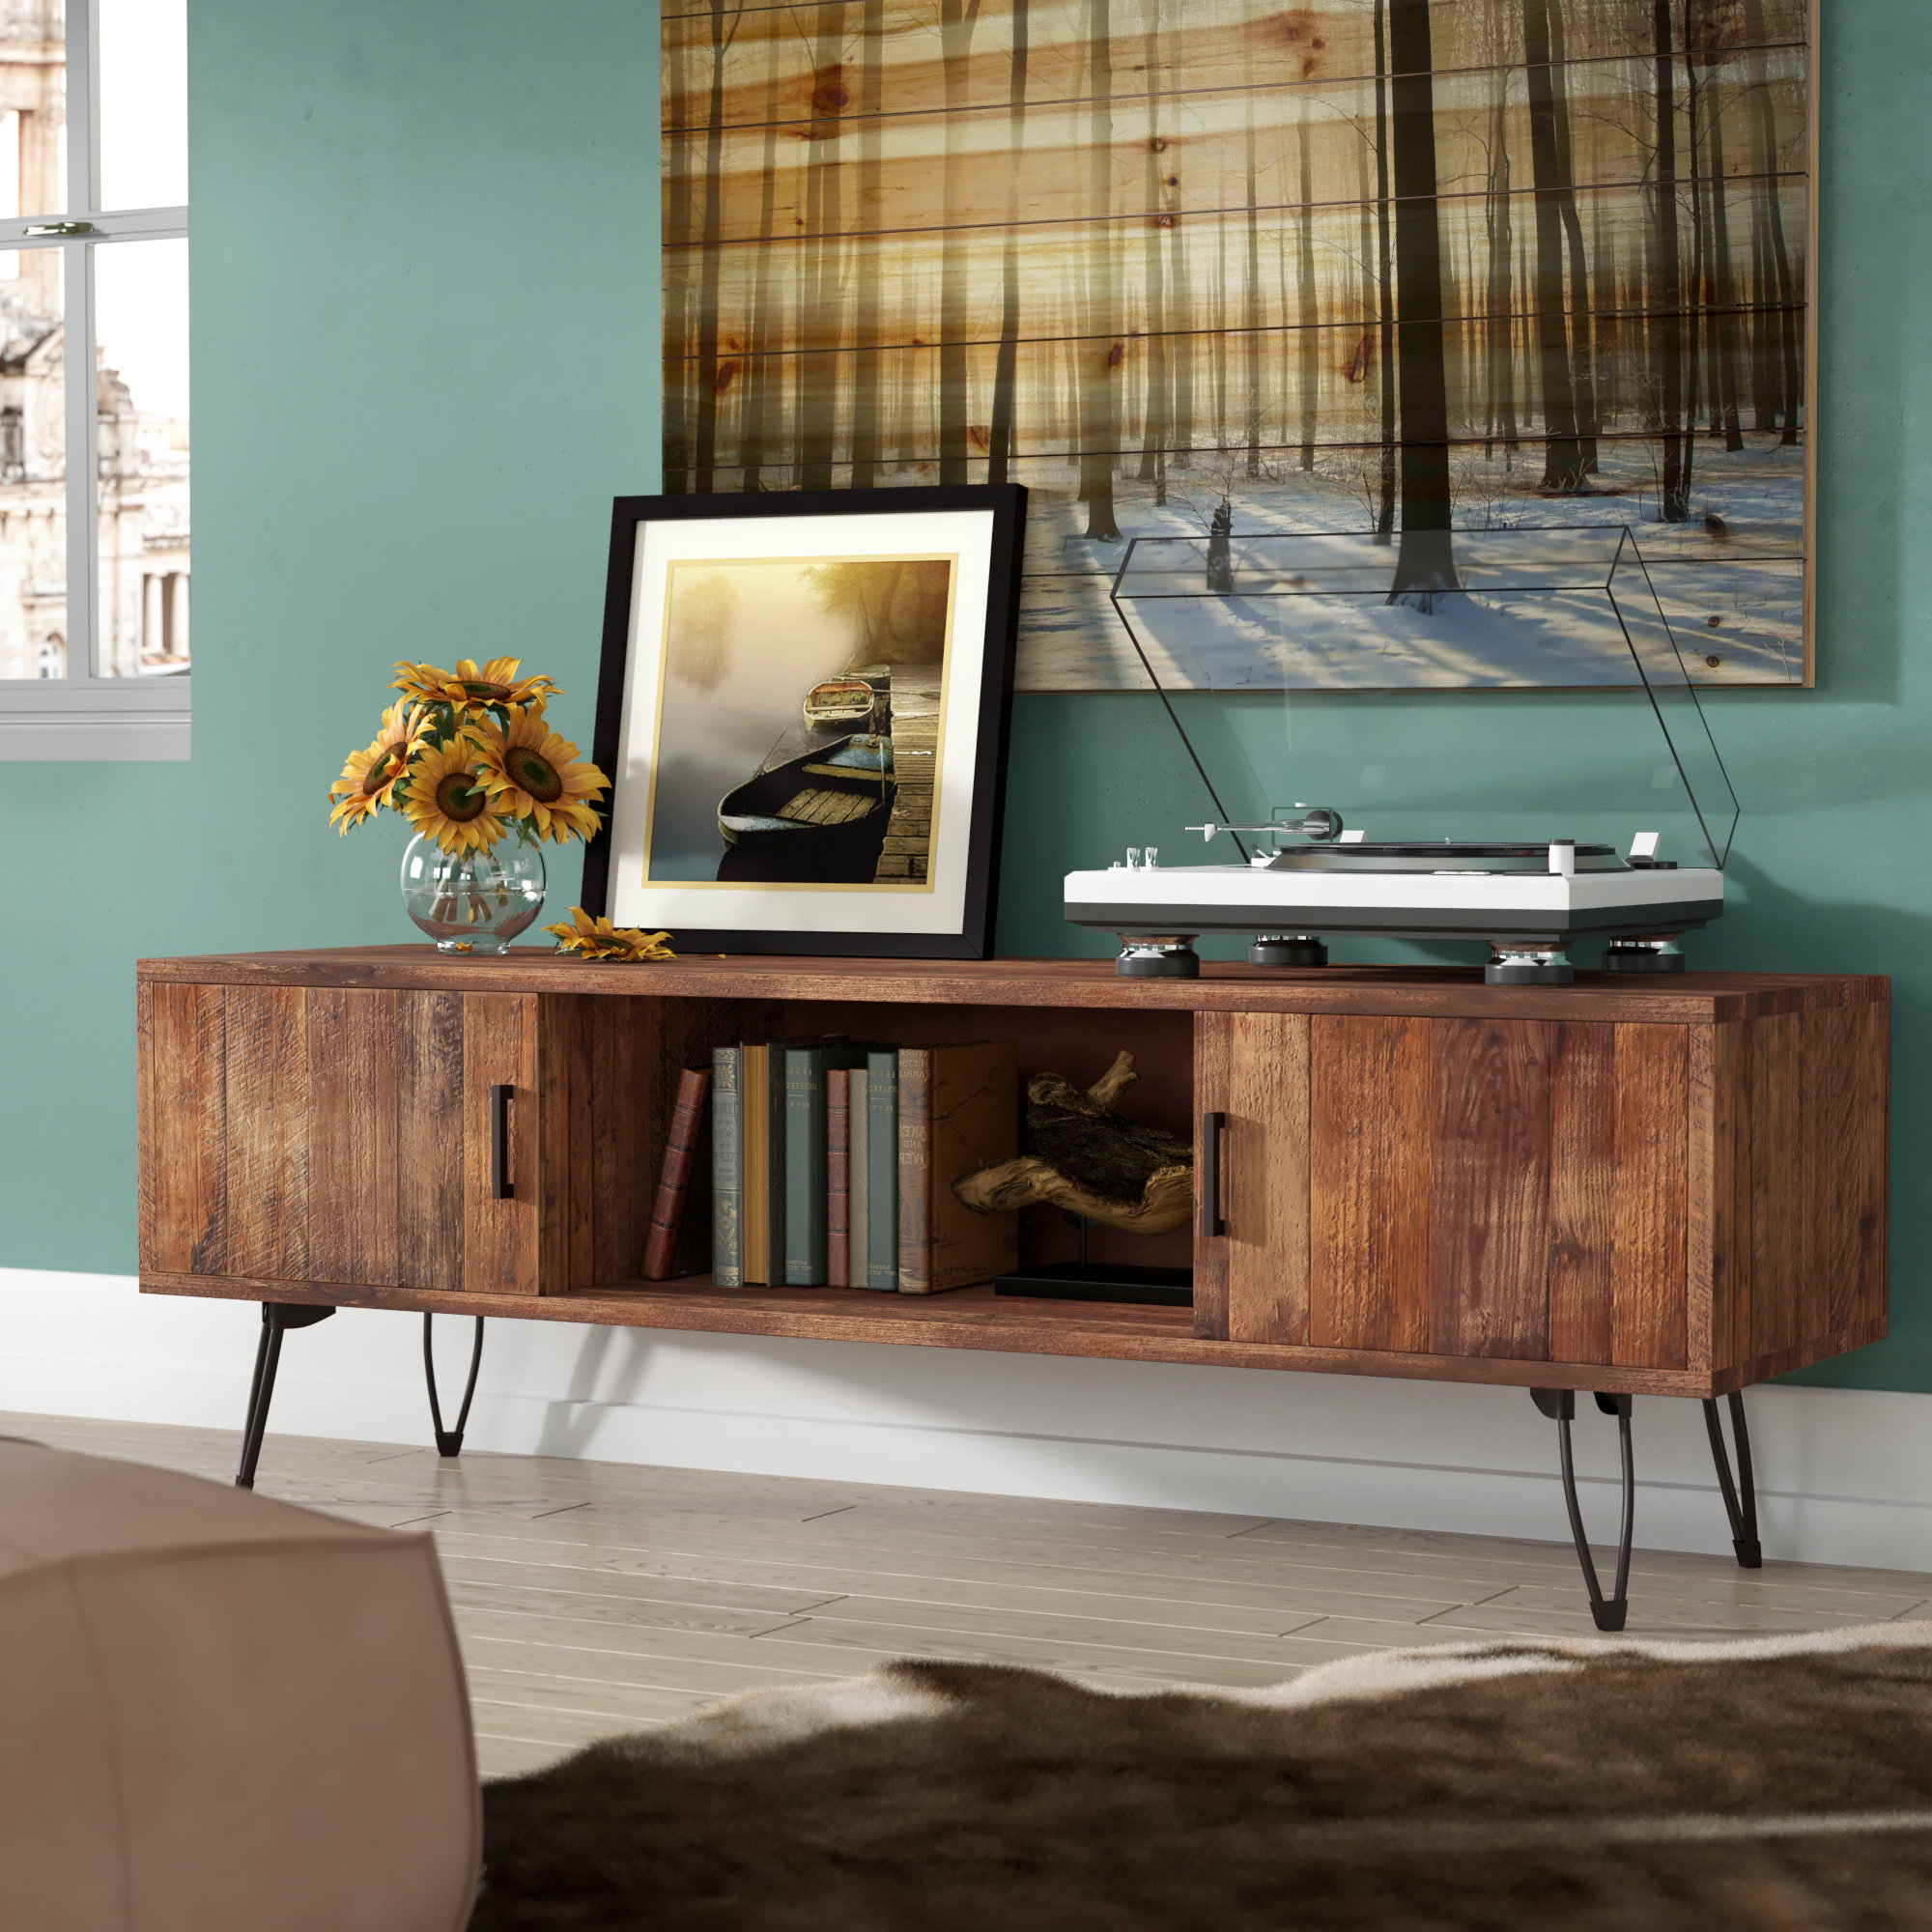 Solid Wood Tv Stands & Entertainment Centers You'll Love | Wayfair Inside Walters Media Console Tables (View 18 of 20)